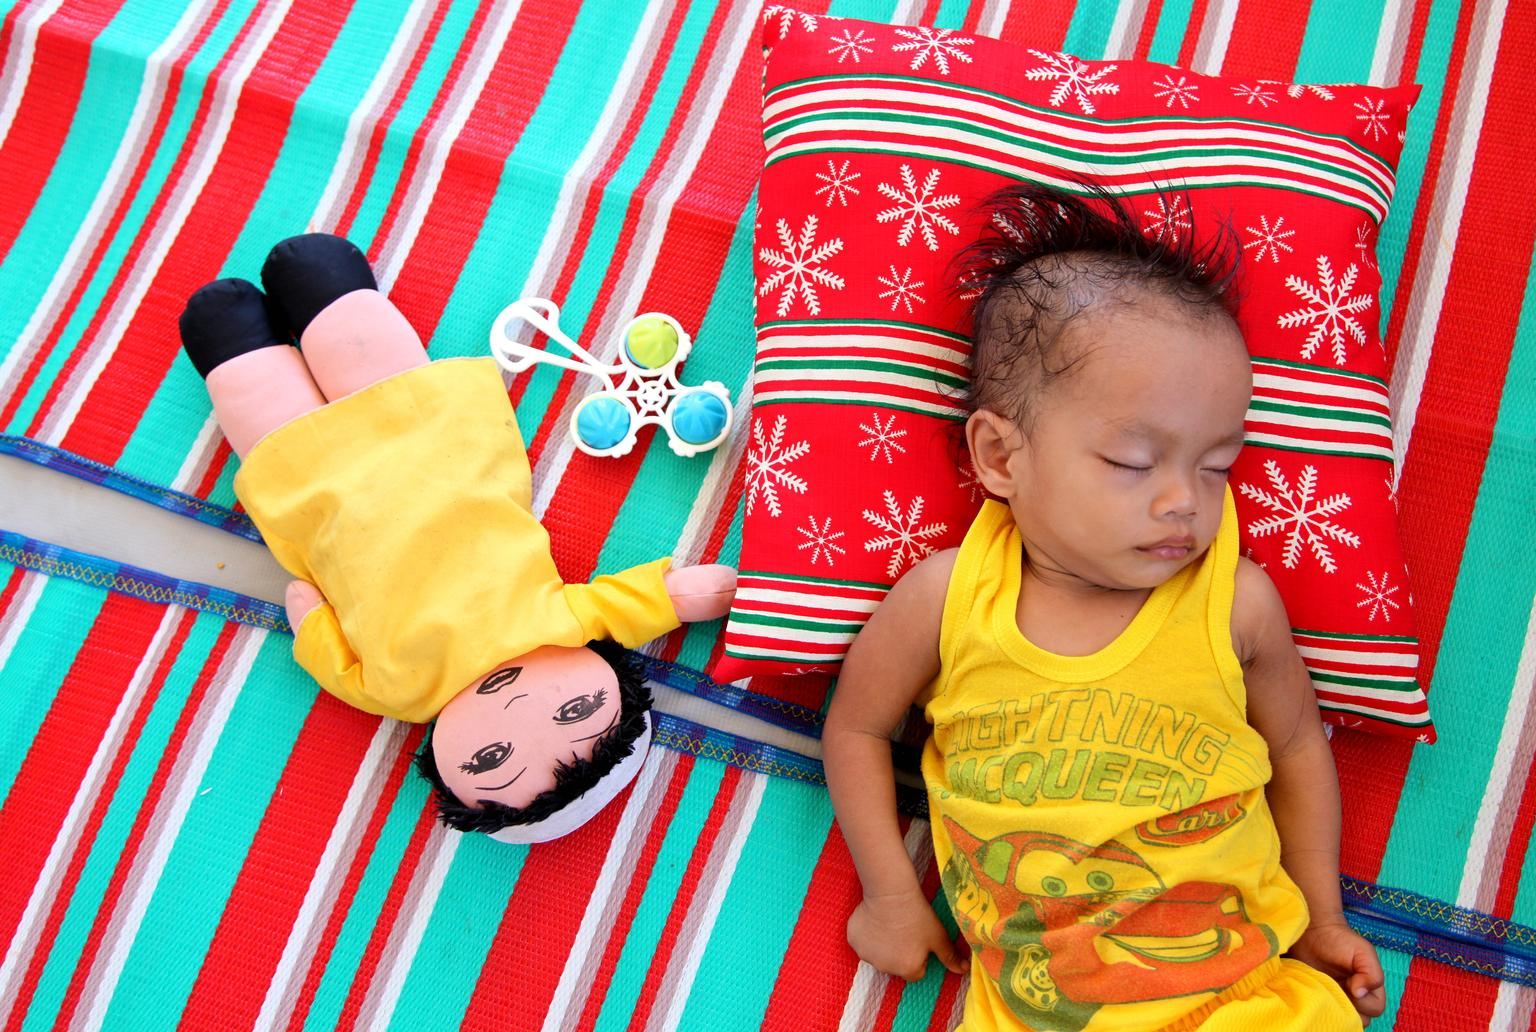 A few months after Typhoon Haiyan, a young child sleeps in a parent/baby-friendly tent, in the city of Tacloban. Numerous risk factors - such as poor nutrition and exposure to violence - can impact on a child's brain development during the early years of life.